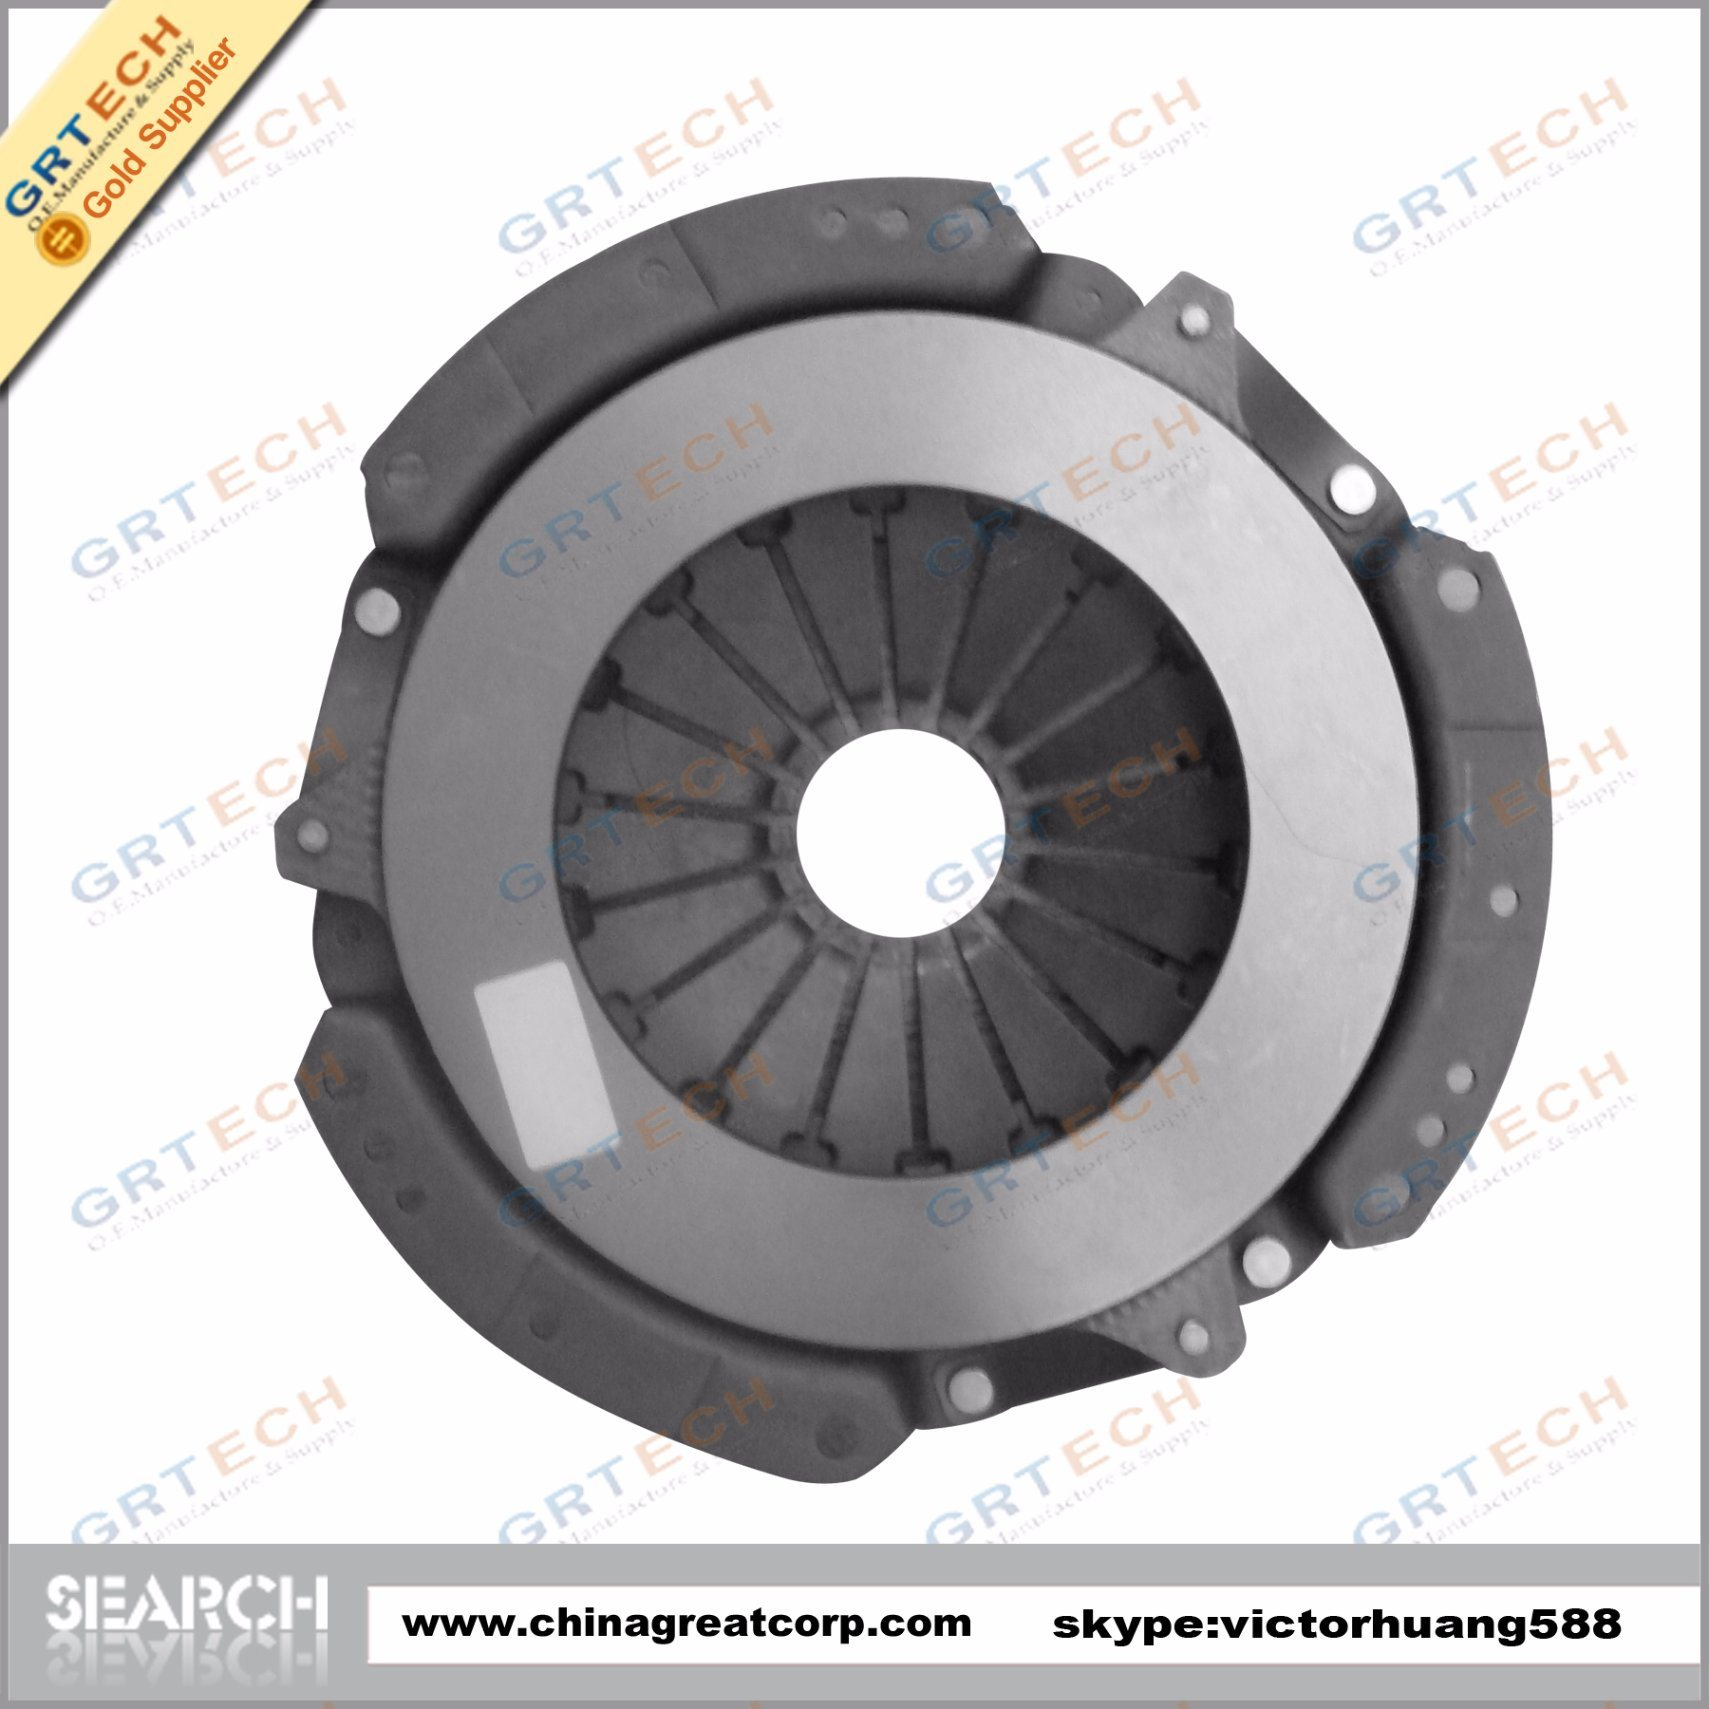 Auto Clutch Kits and Clutch Pressure Plate Clutch Discs for Paken